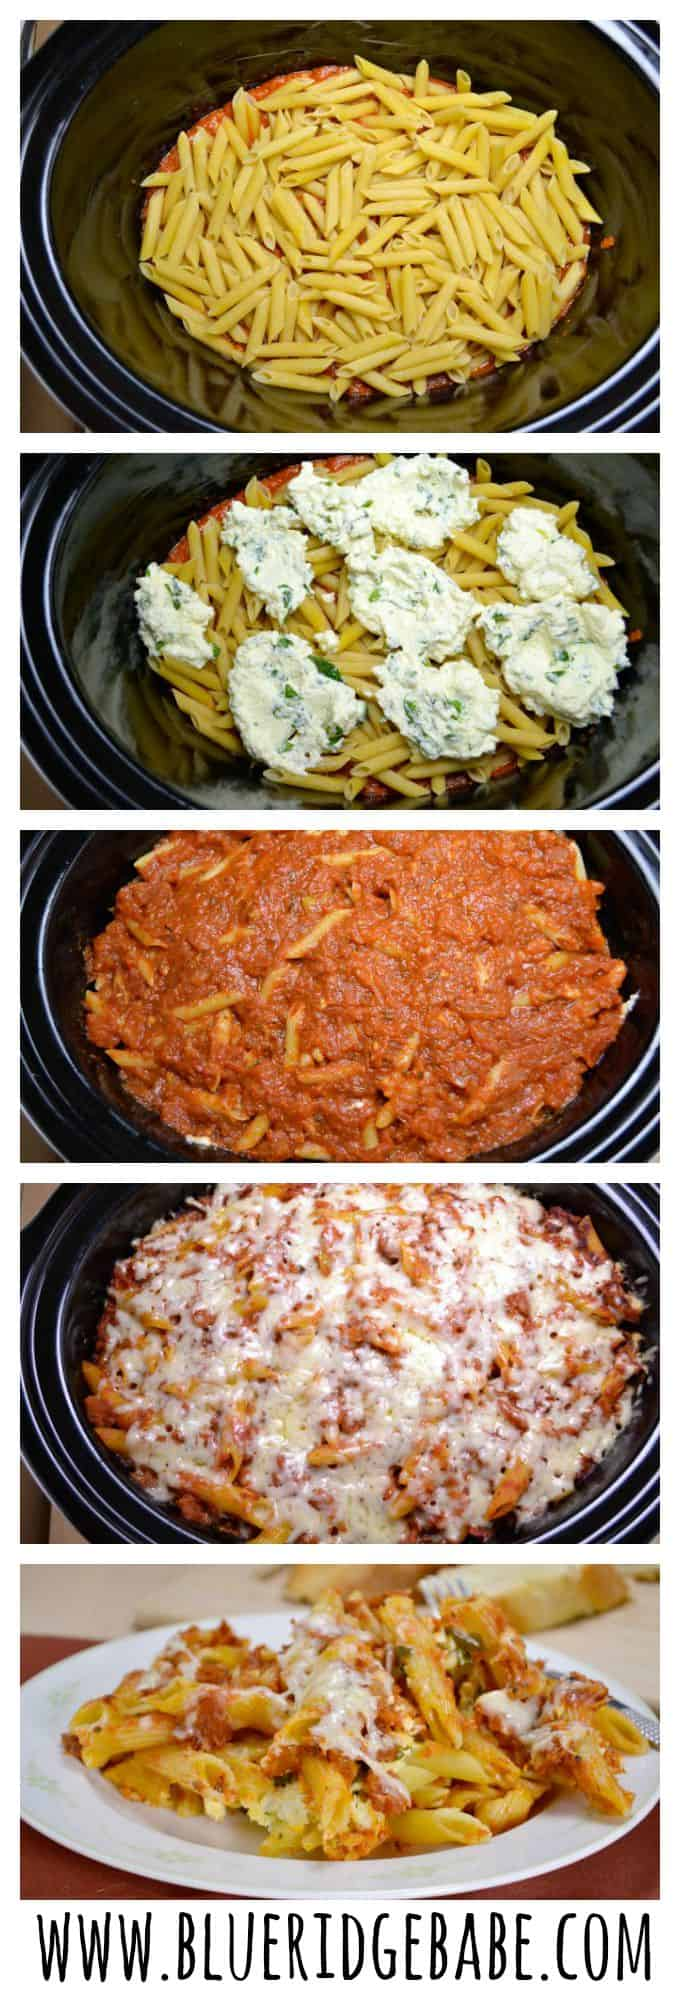 7 Vegetarian Meals You Can Cook Once And Eat All Week 7 Vegetarian Meals You Can Cook Once And Eat All Week new photo